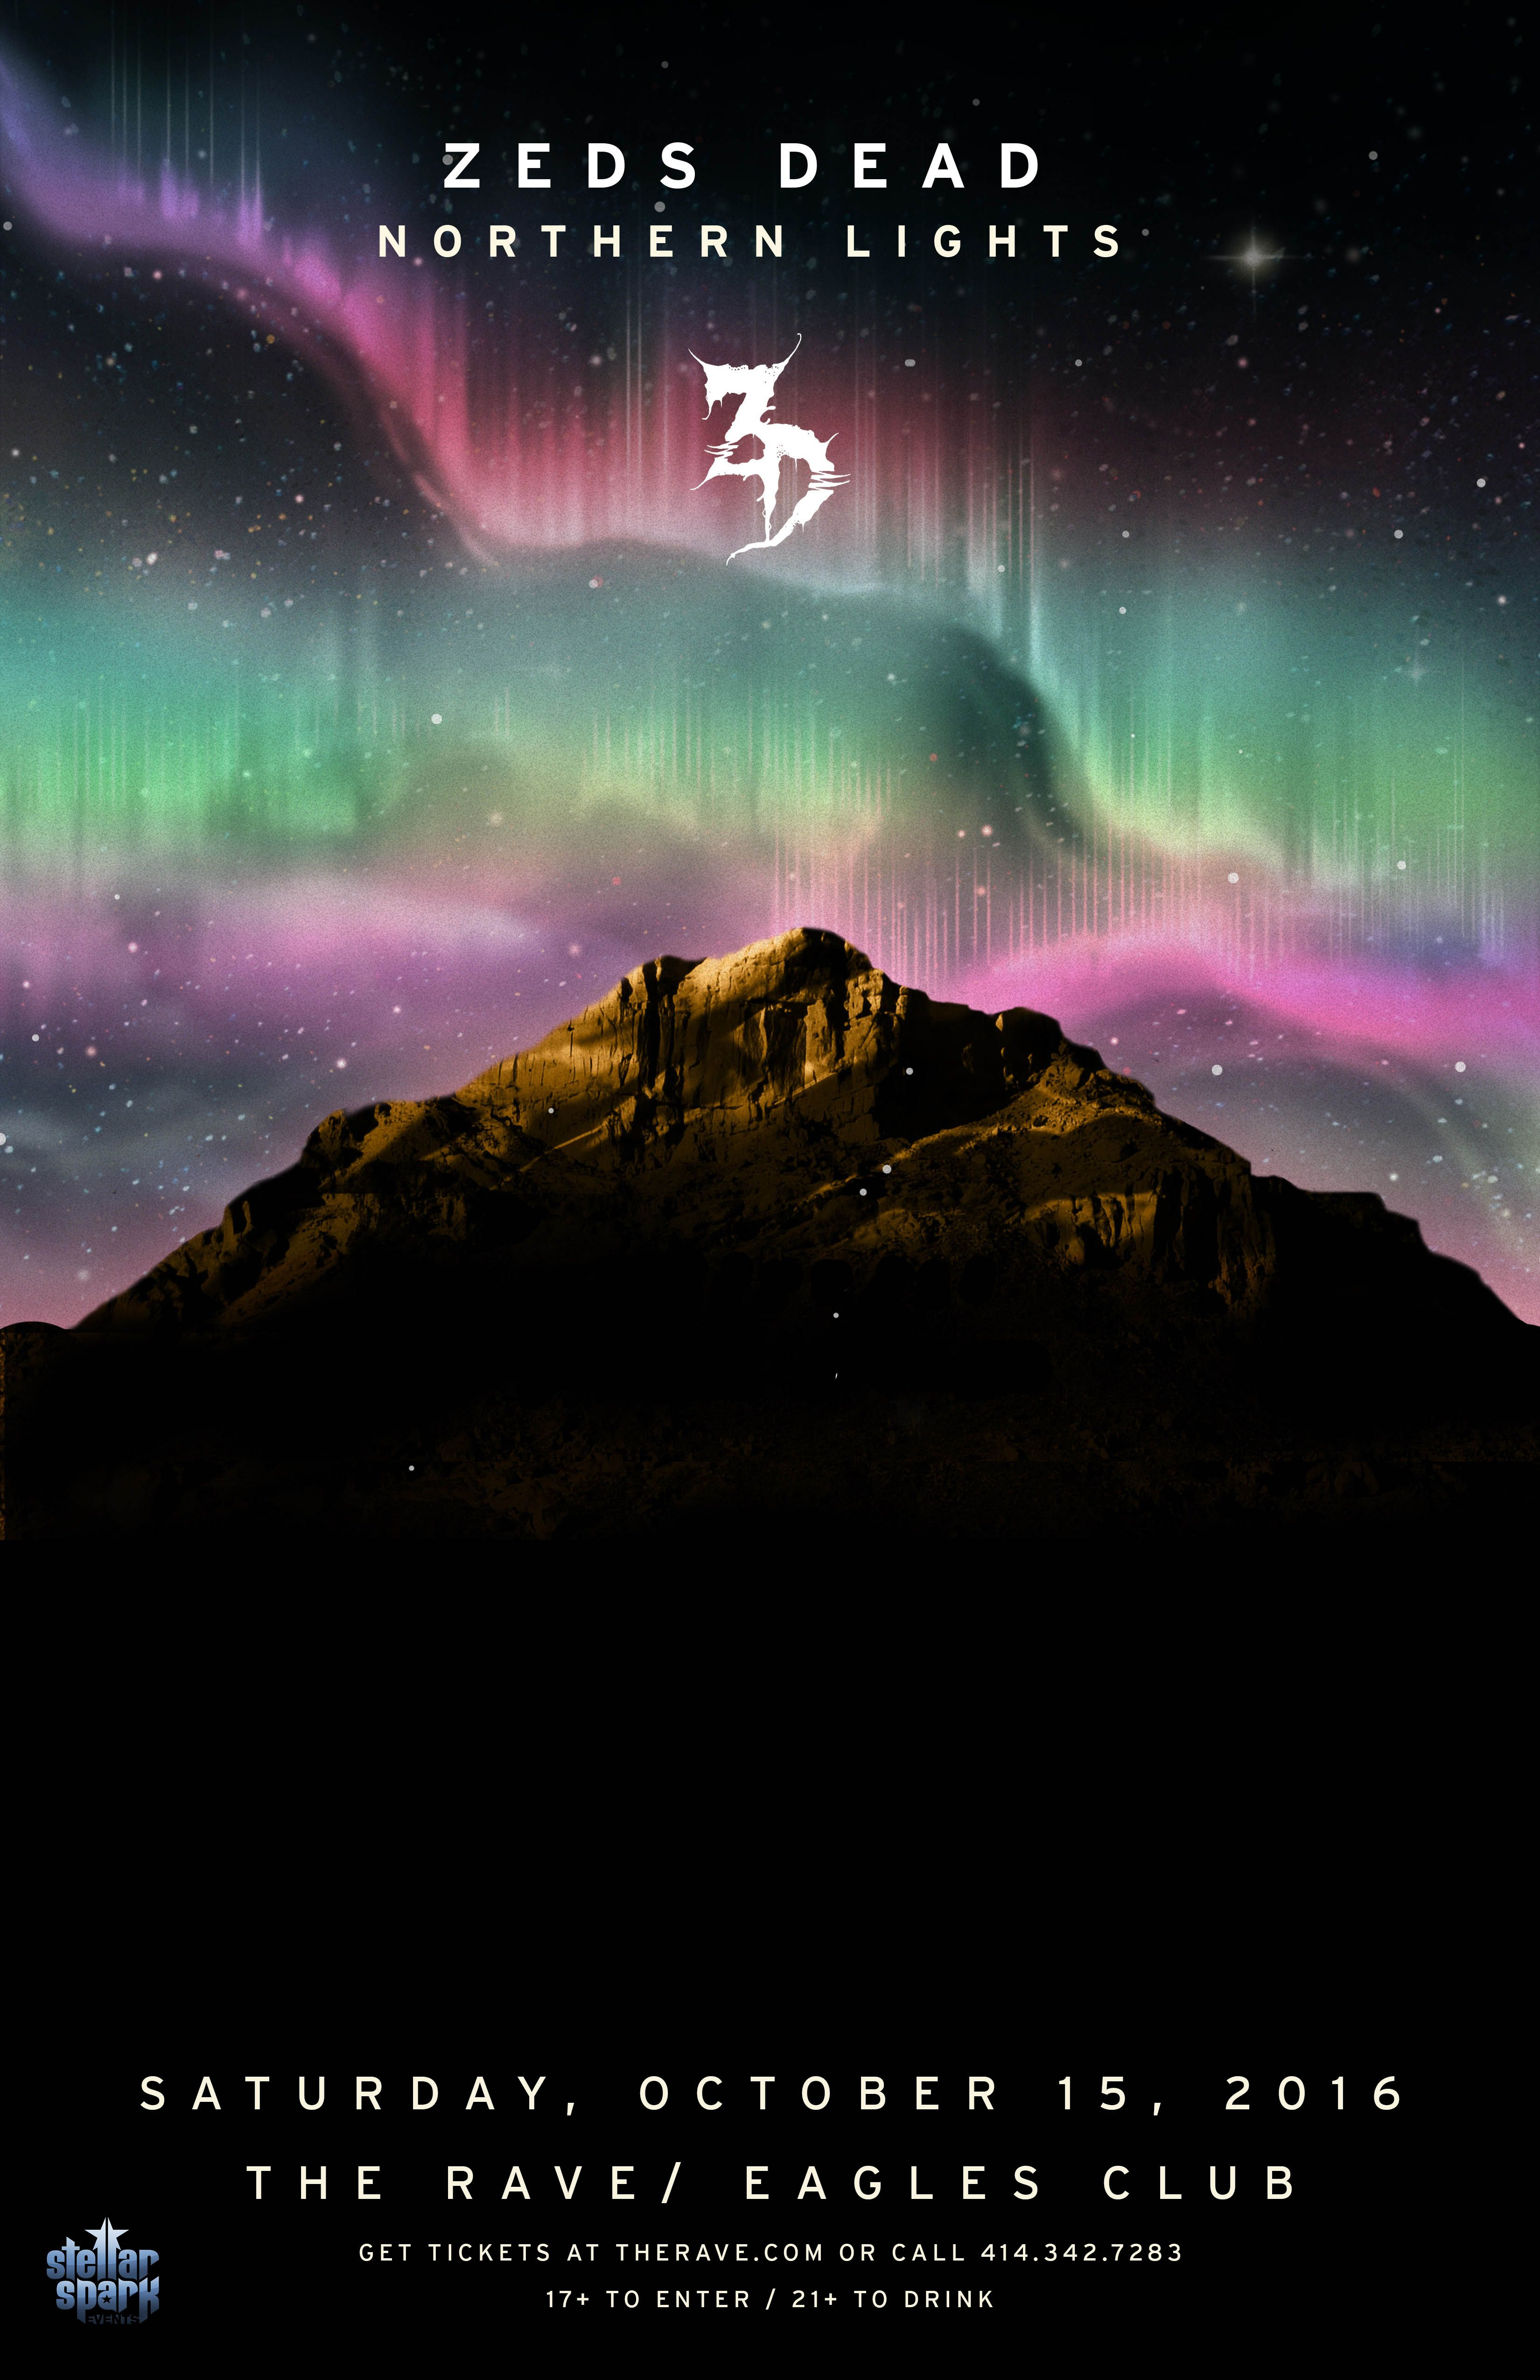 Stellar Spark Events Presents Zeds Dead Northern Lights Tour Saturday October 15 2016 At 8pm Doors Scheduled Zeds Dead Northern Lights Tours Rave Poster